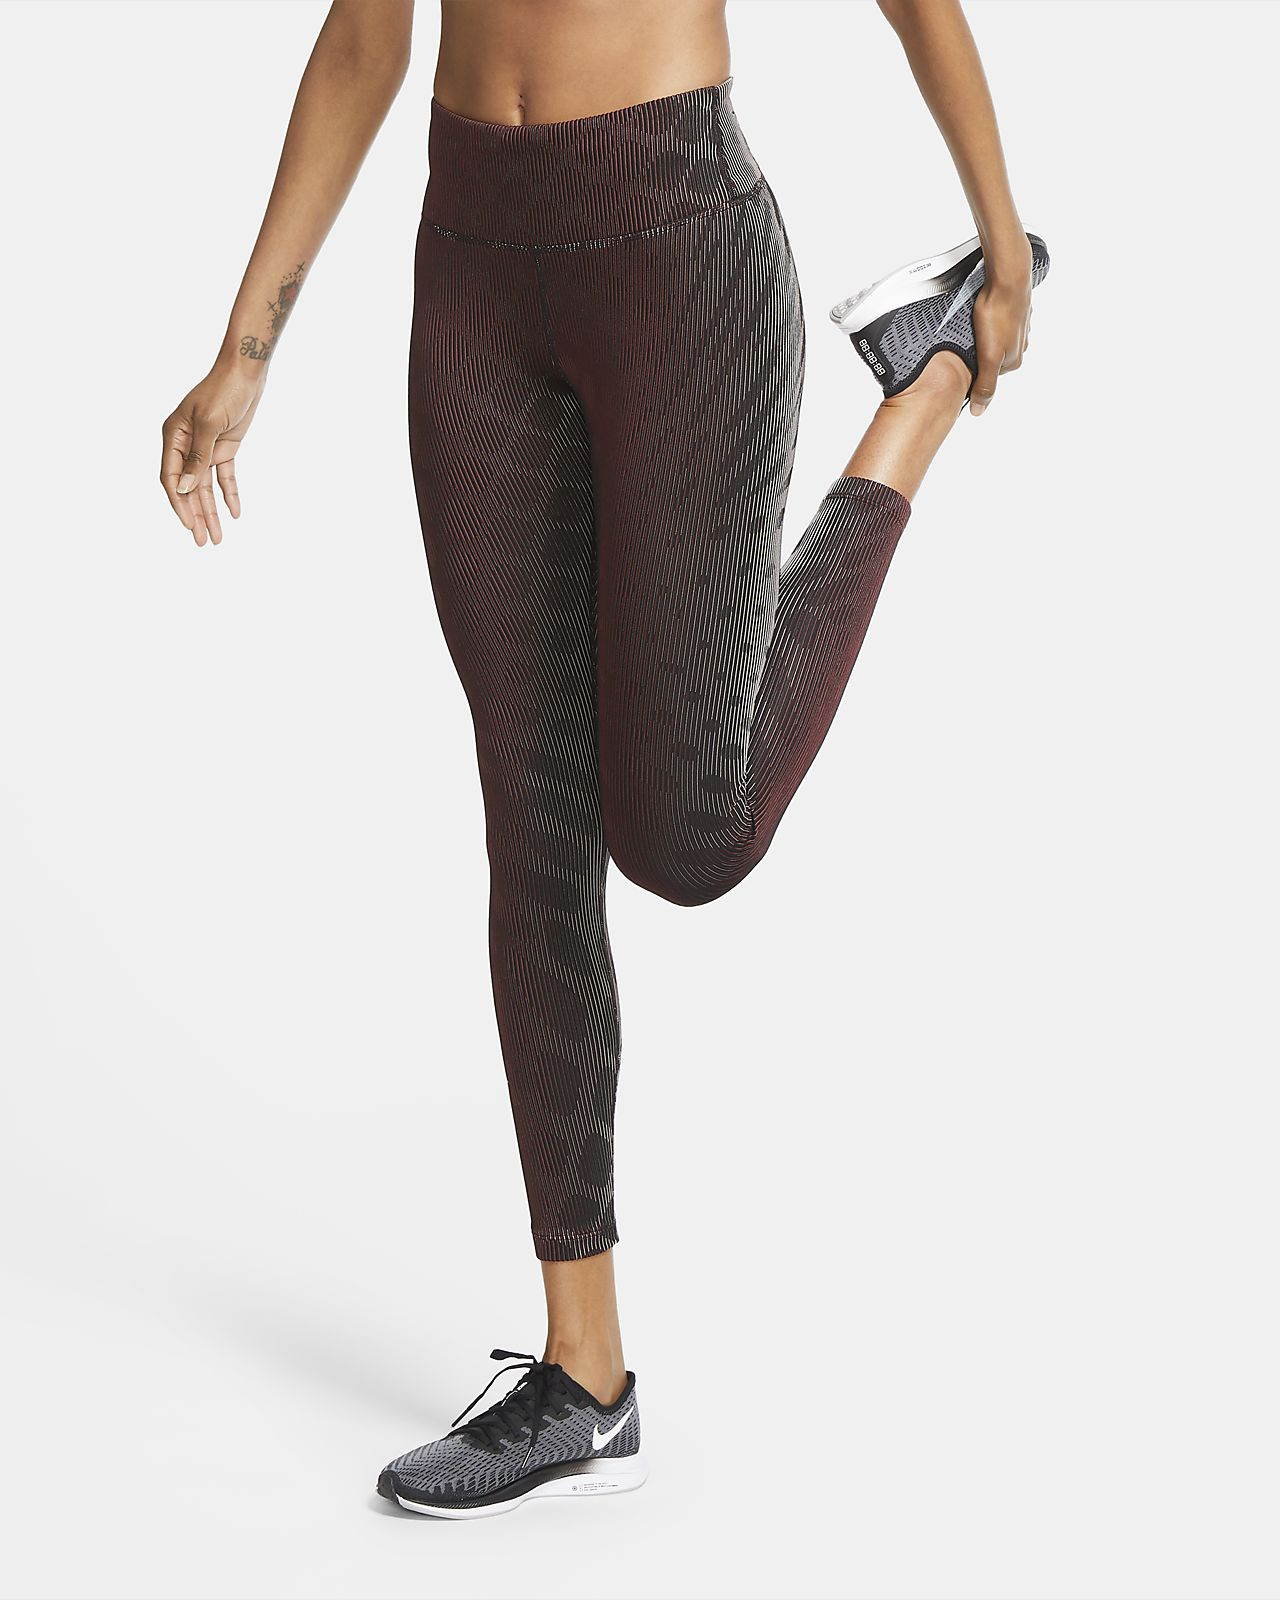 Nike Epic Luxe Run Division Women's 7/8 Running Tights